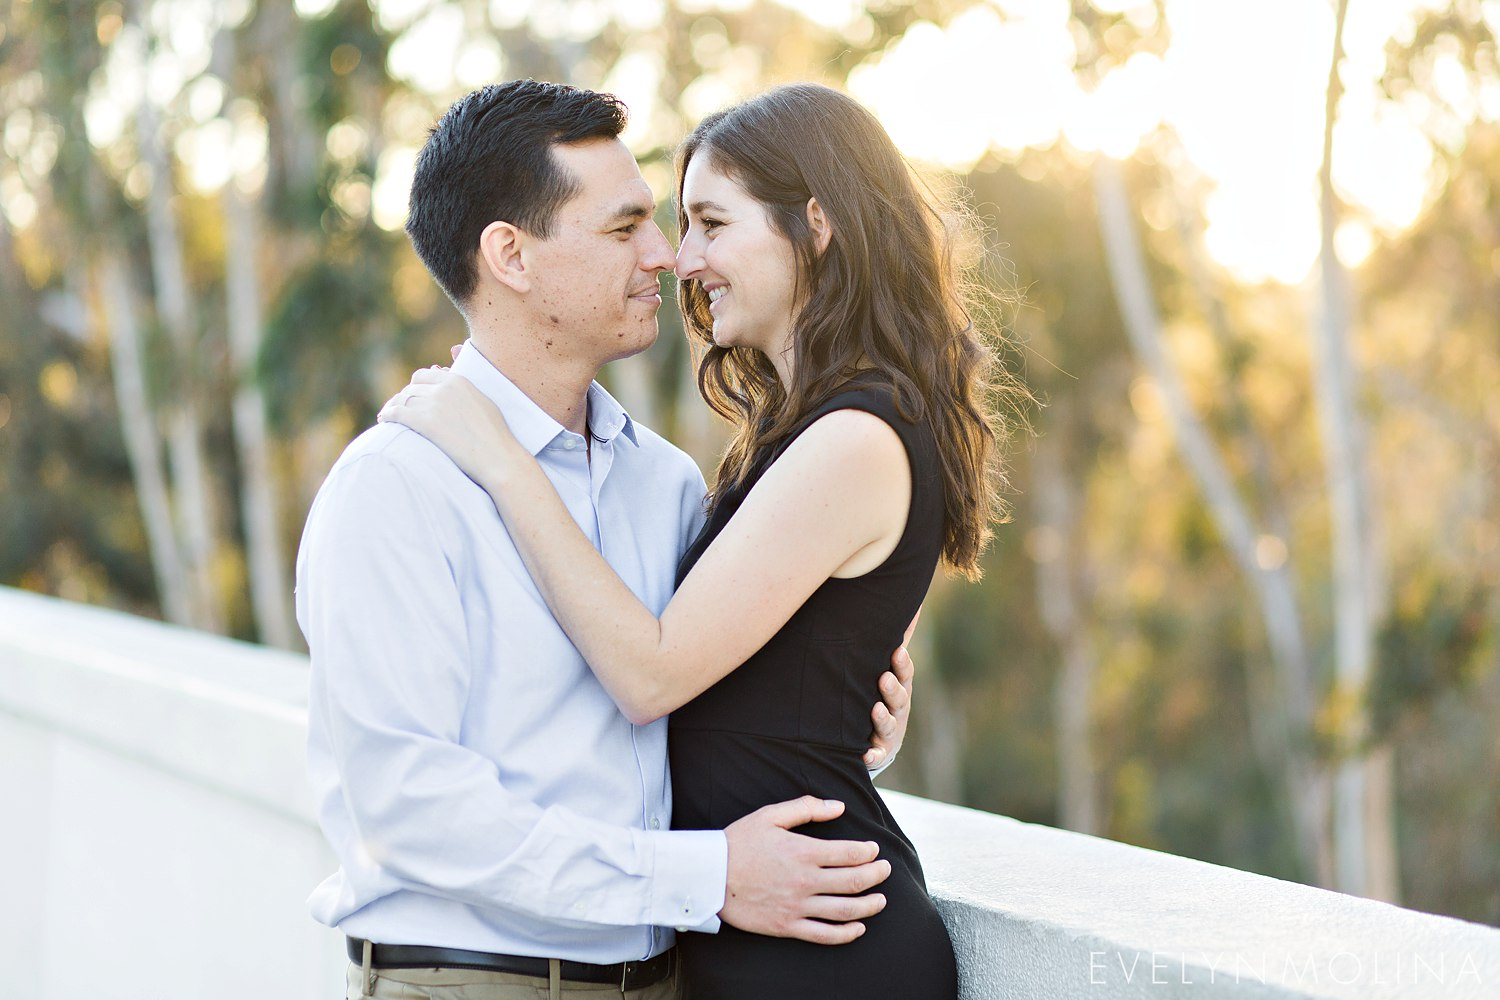 Balboa Park Engagement Session - Kristen and Justin_0023.jpg